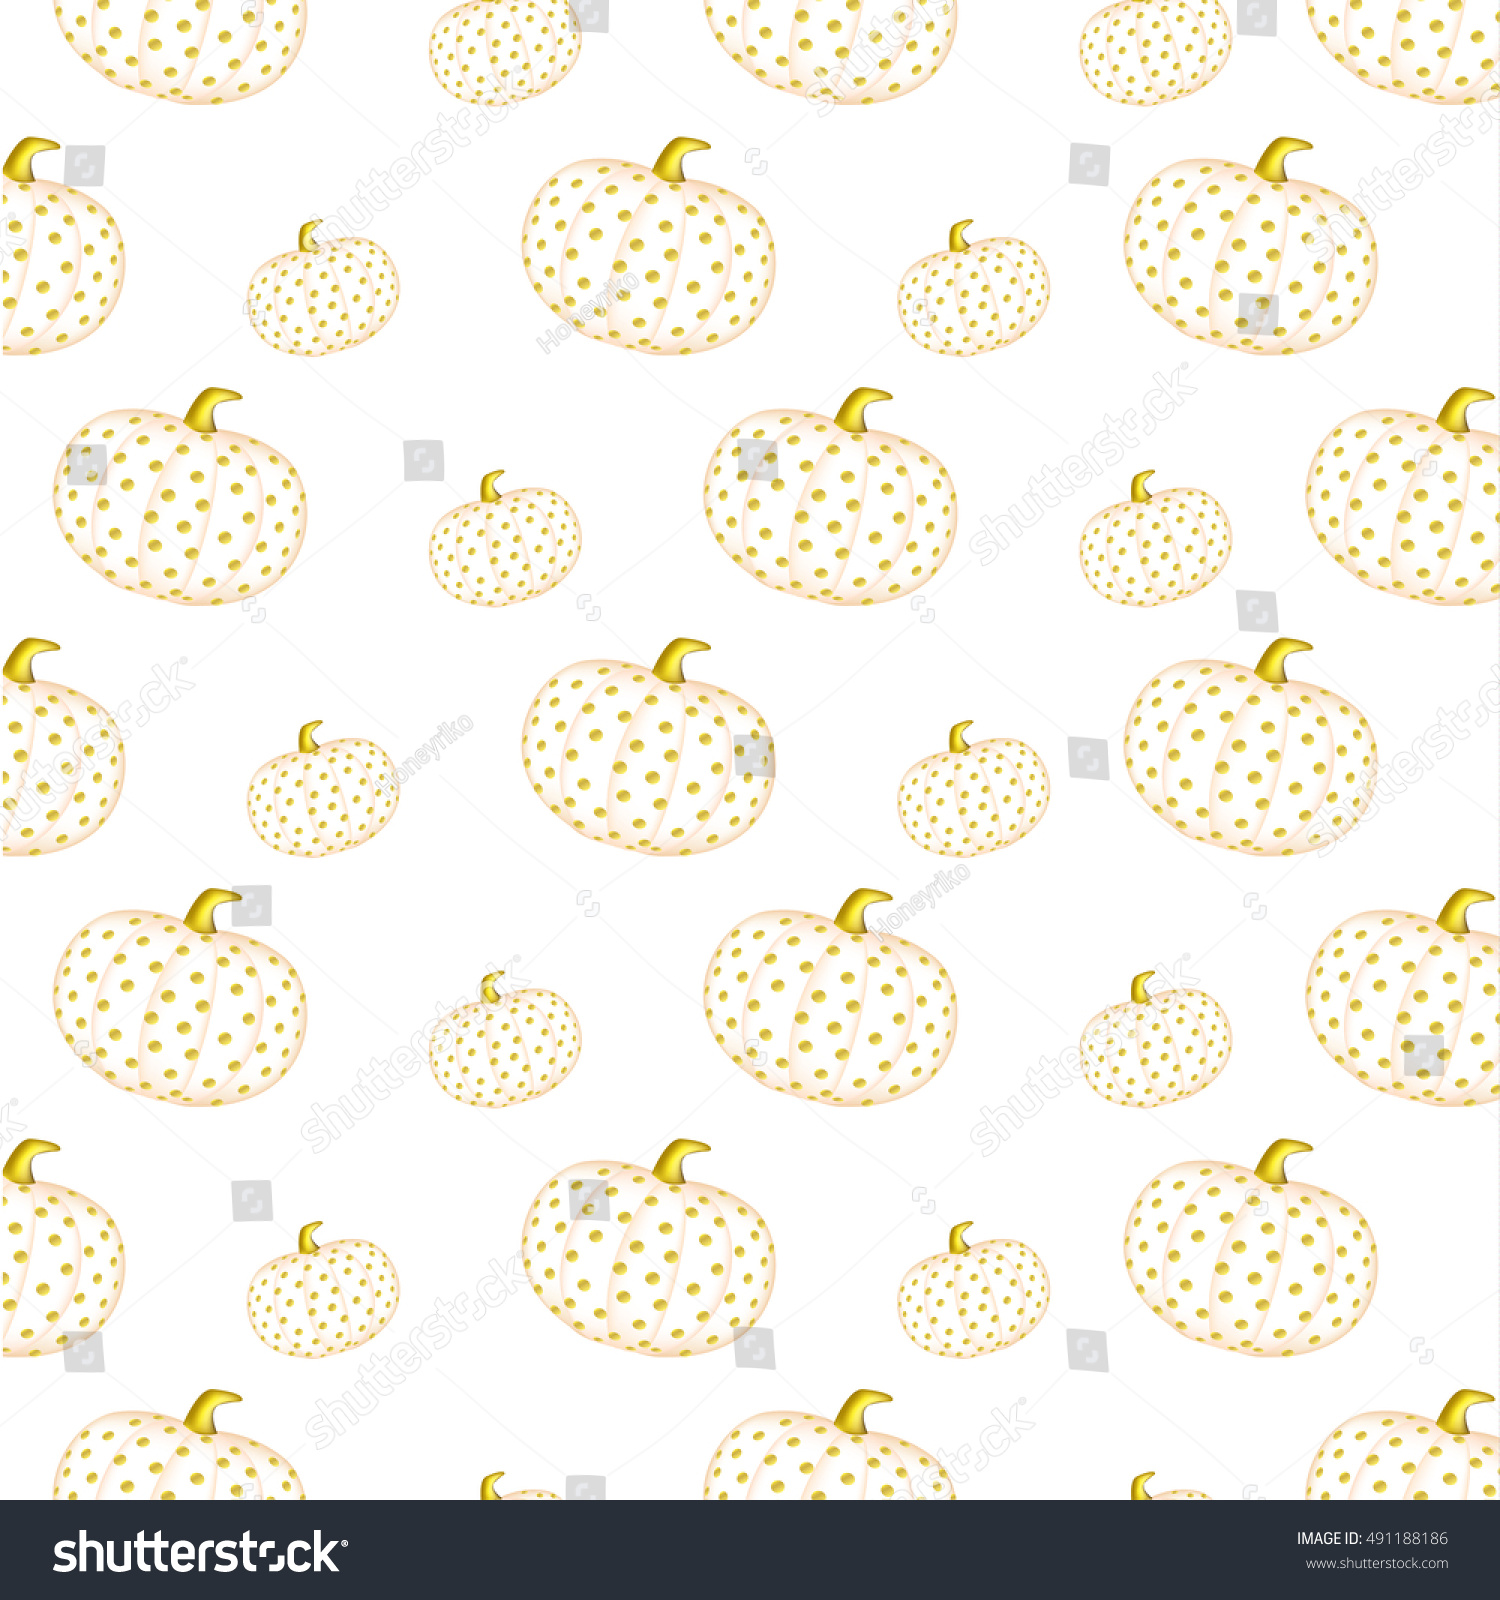 Cool Wallpaper Halloween Gold - stock-vector-halloween-pumpkin-with-gold-dot-pattern-491188186  Image_4818.jpg